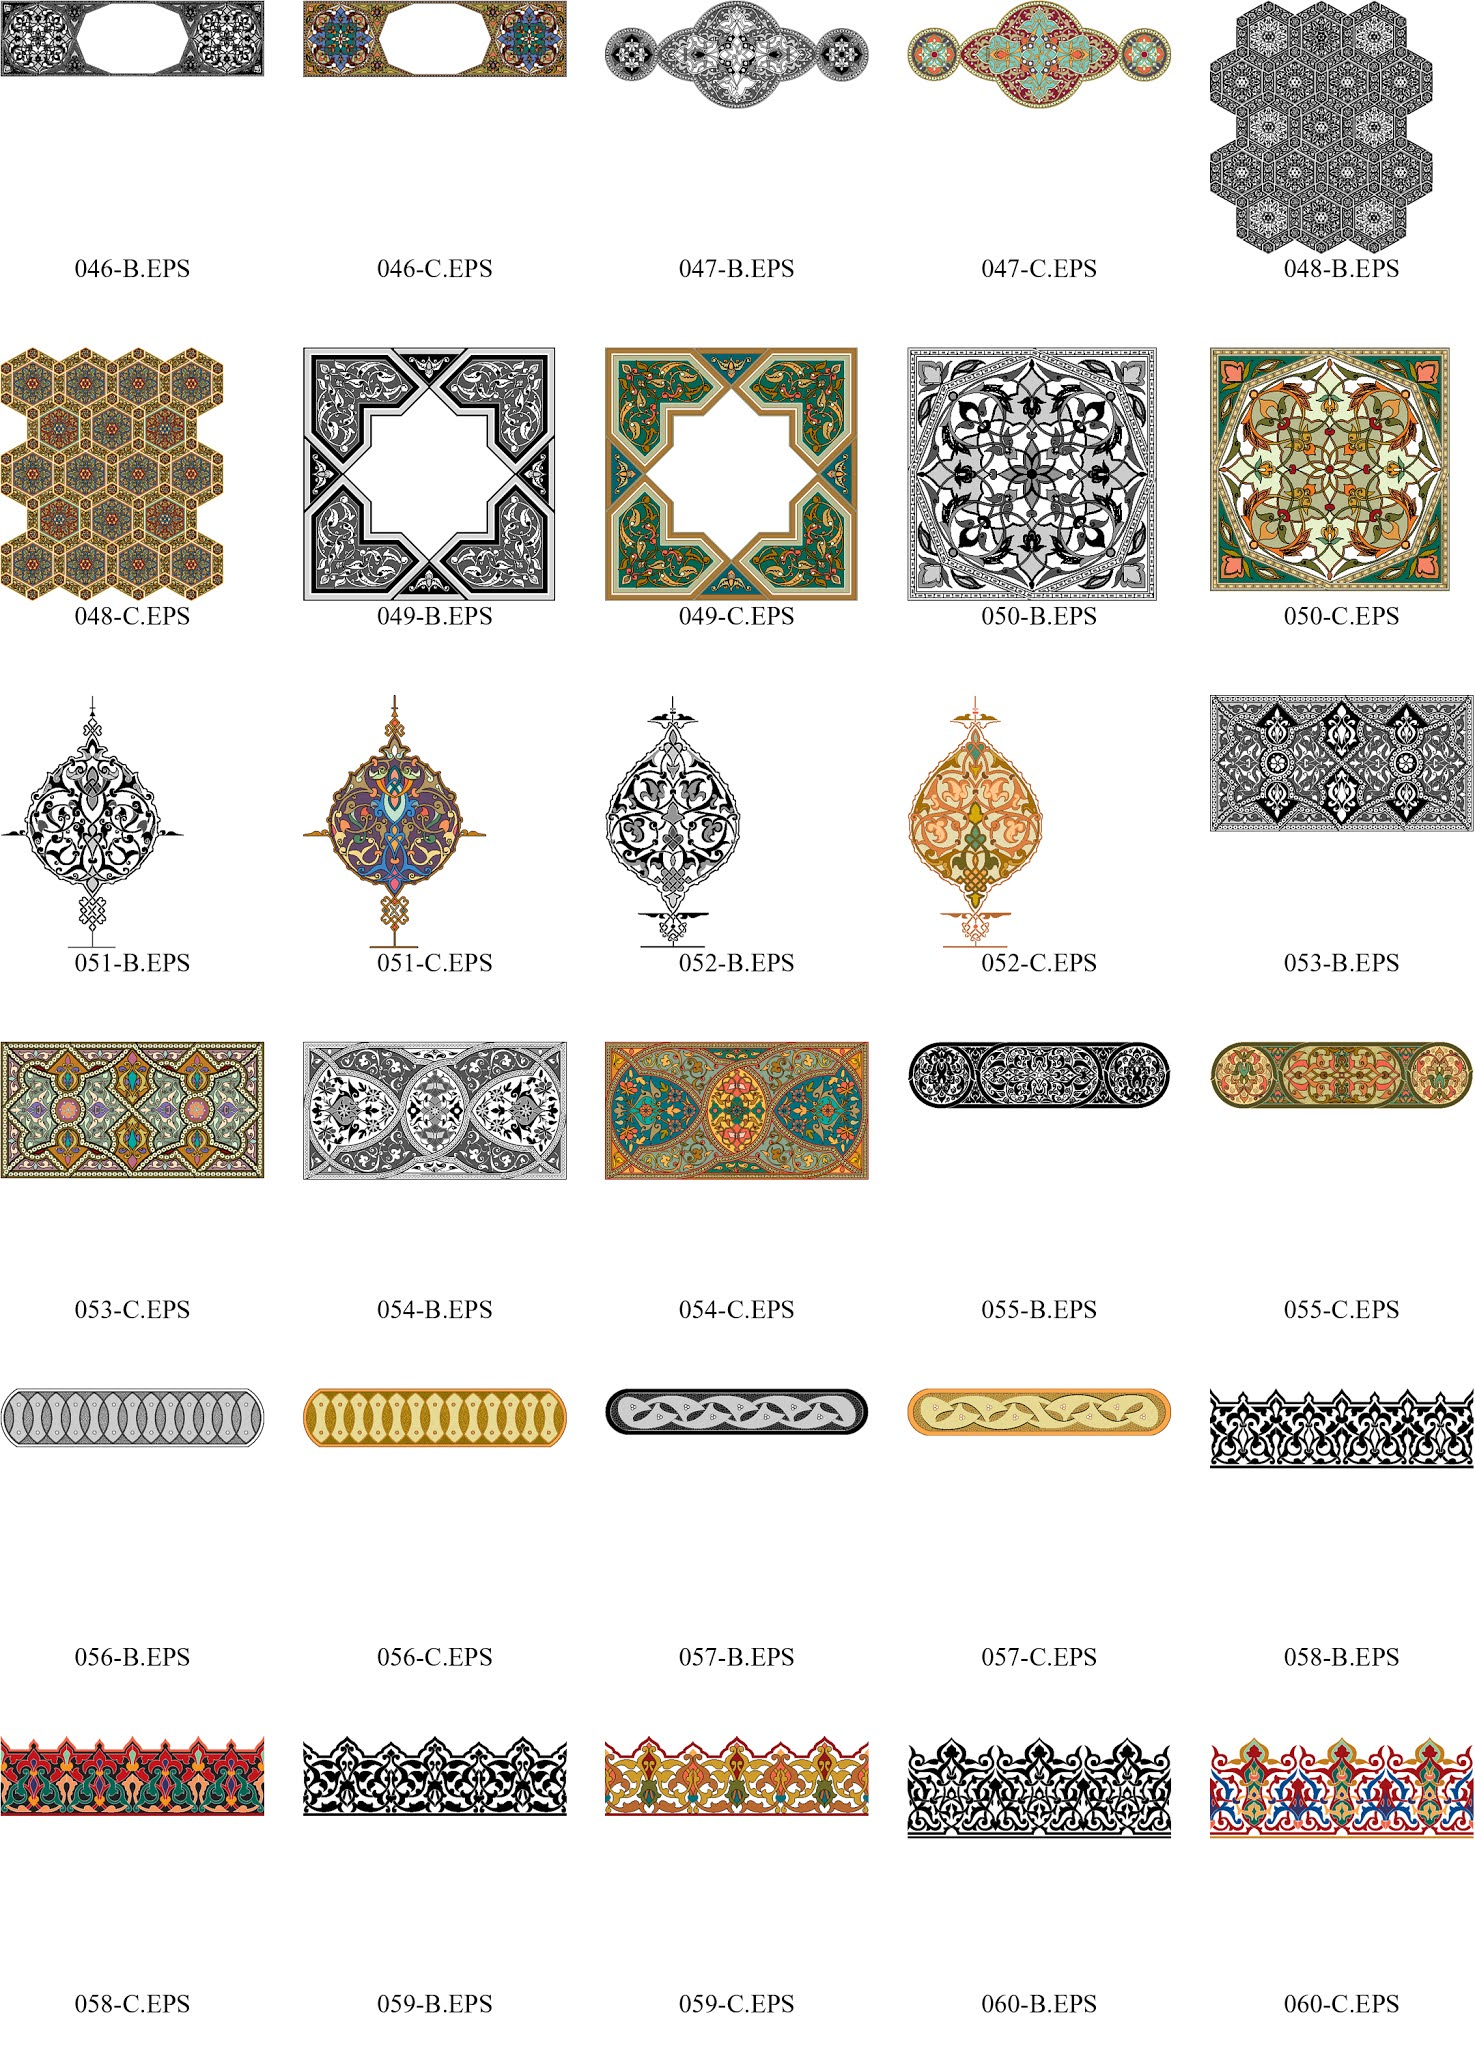 A very large collection of Islamic decorations and inscriptions